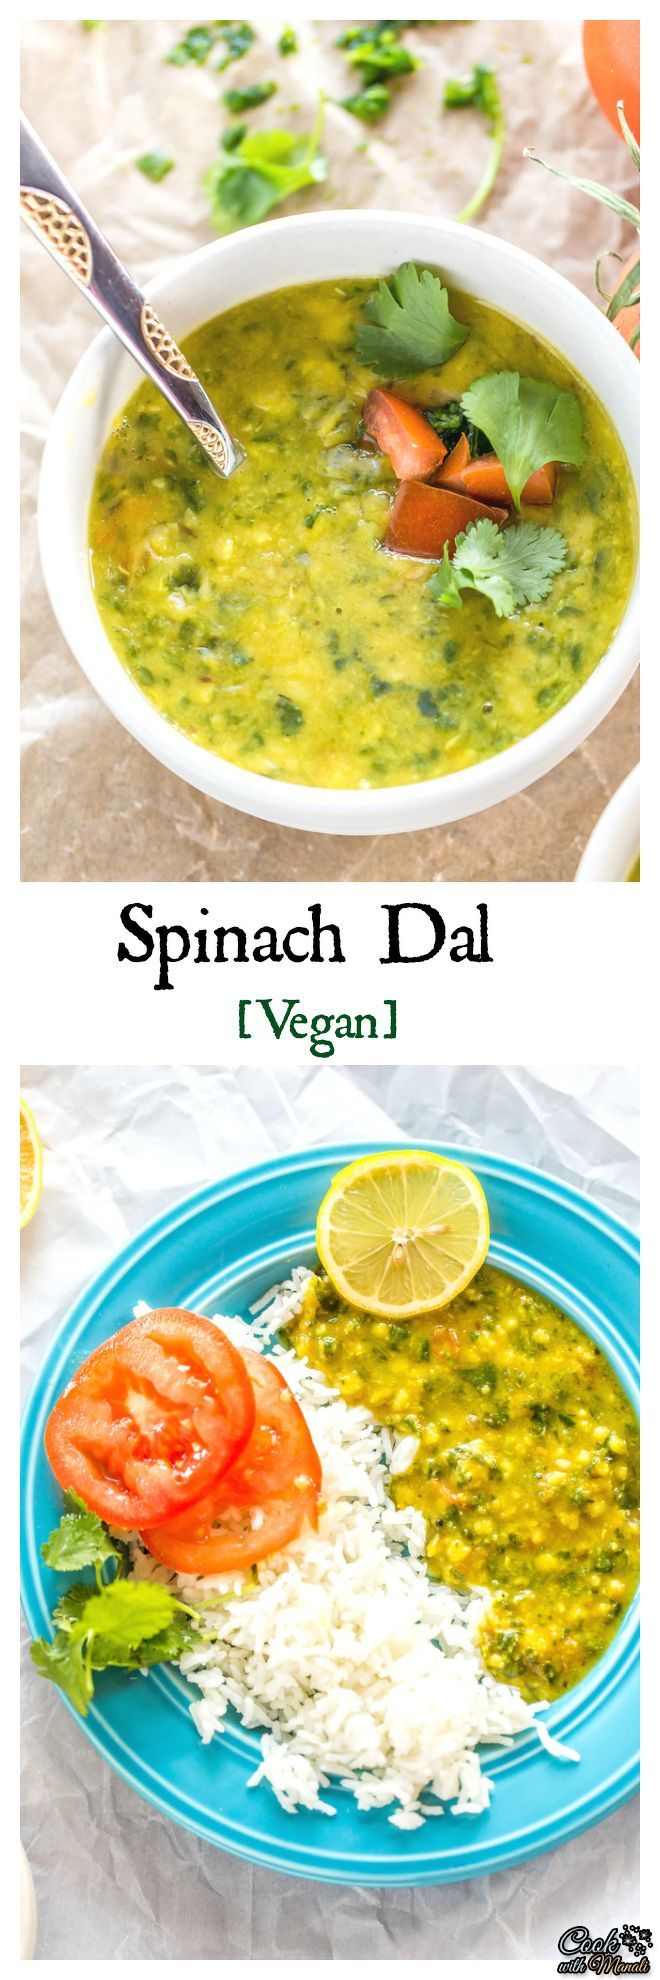 Lentils cooked with spinach and tomatoes. This Spinach Dal is lightly spiced, healthy, vegan and good for you! #vegan #vegetarian #indian Find the recipe on http://www.cookwithmanali.com